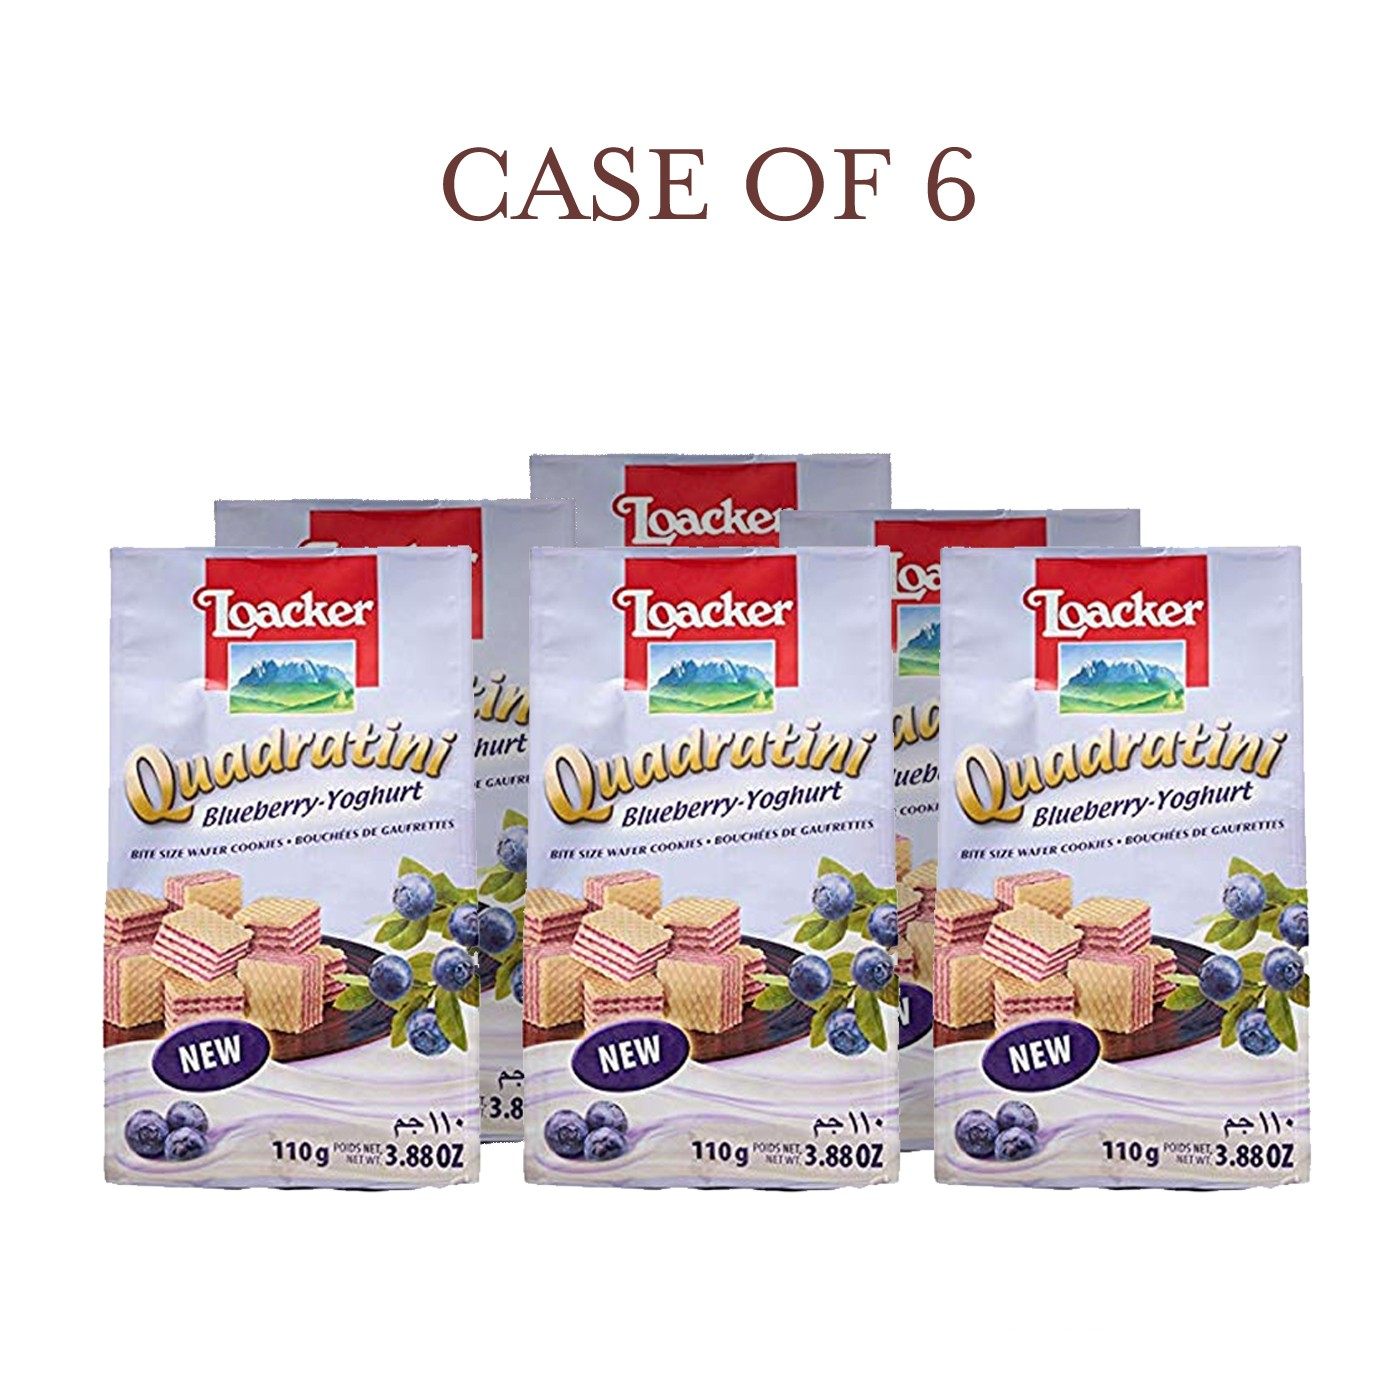 Blueberry-Yogurt Quadratini - Case of 6